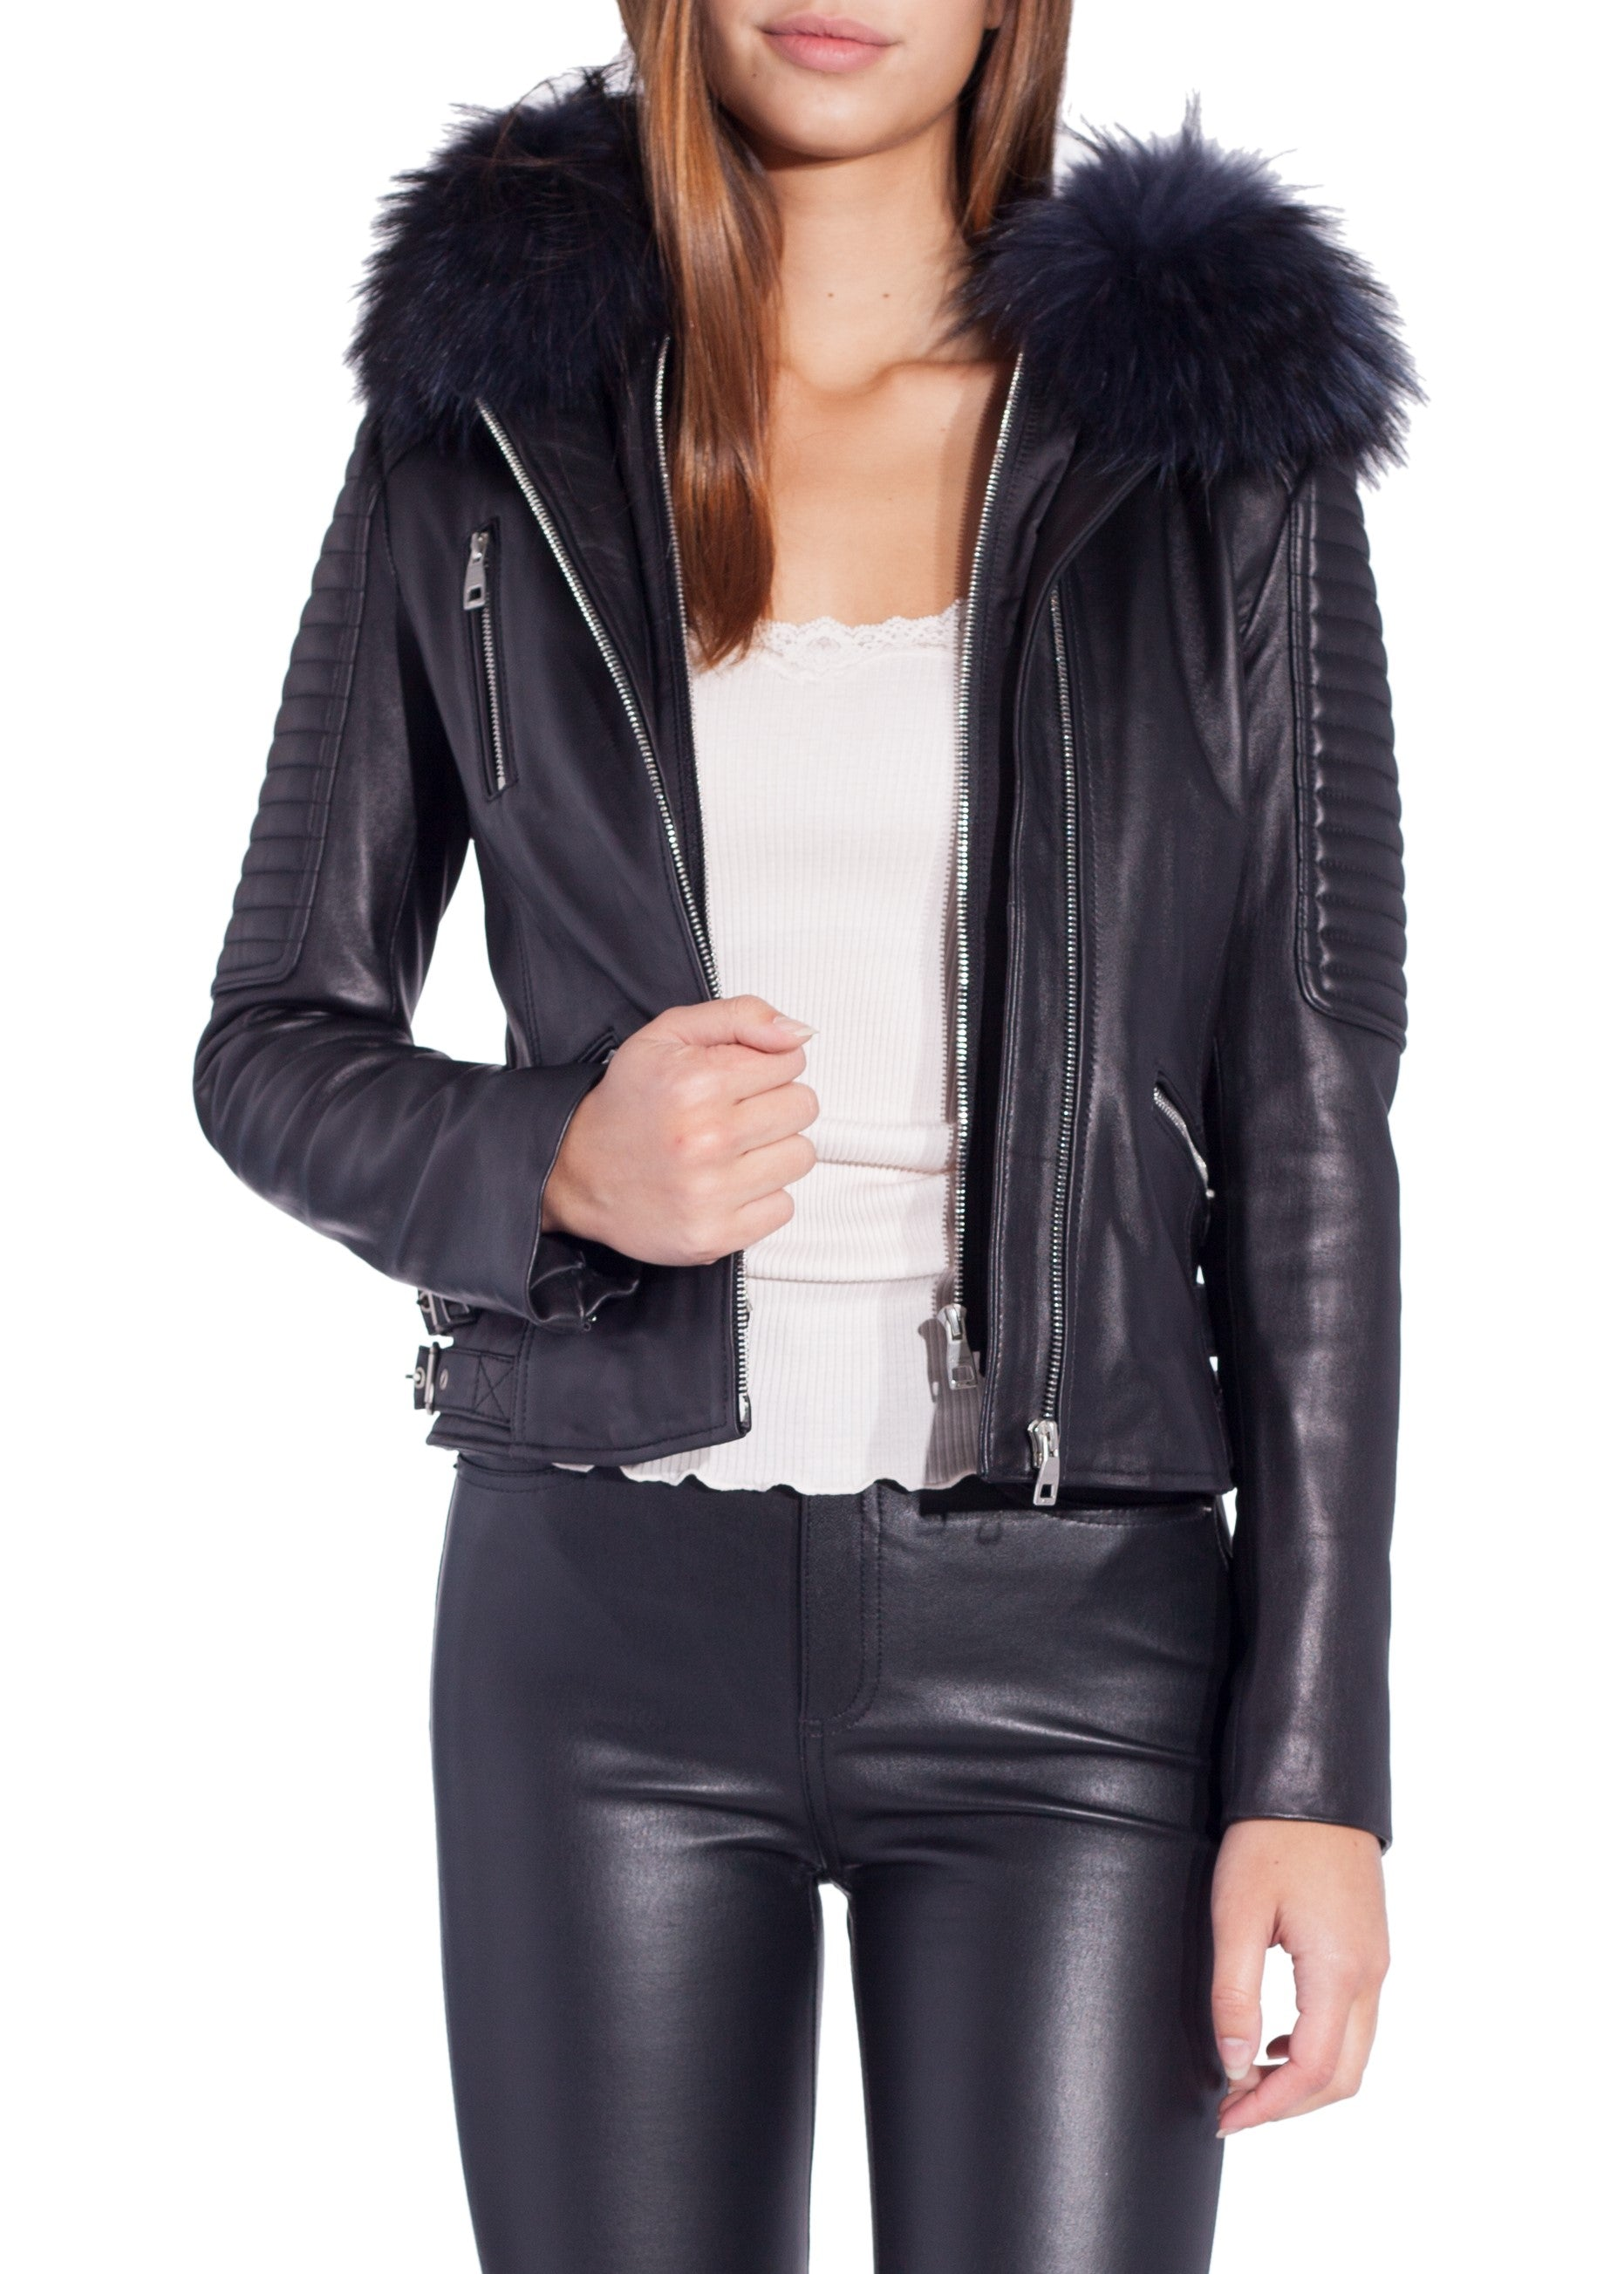 Intuition arly leather jacket with fur hood black